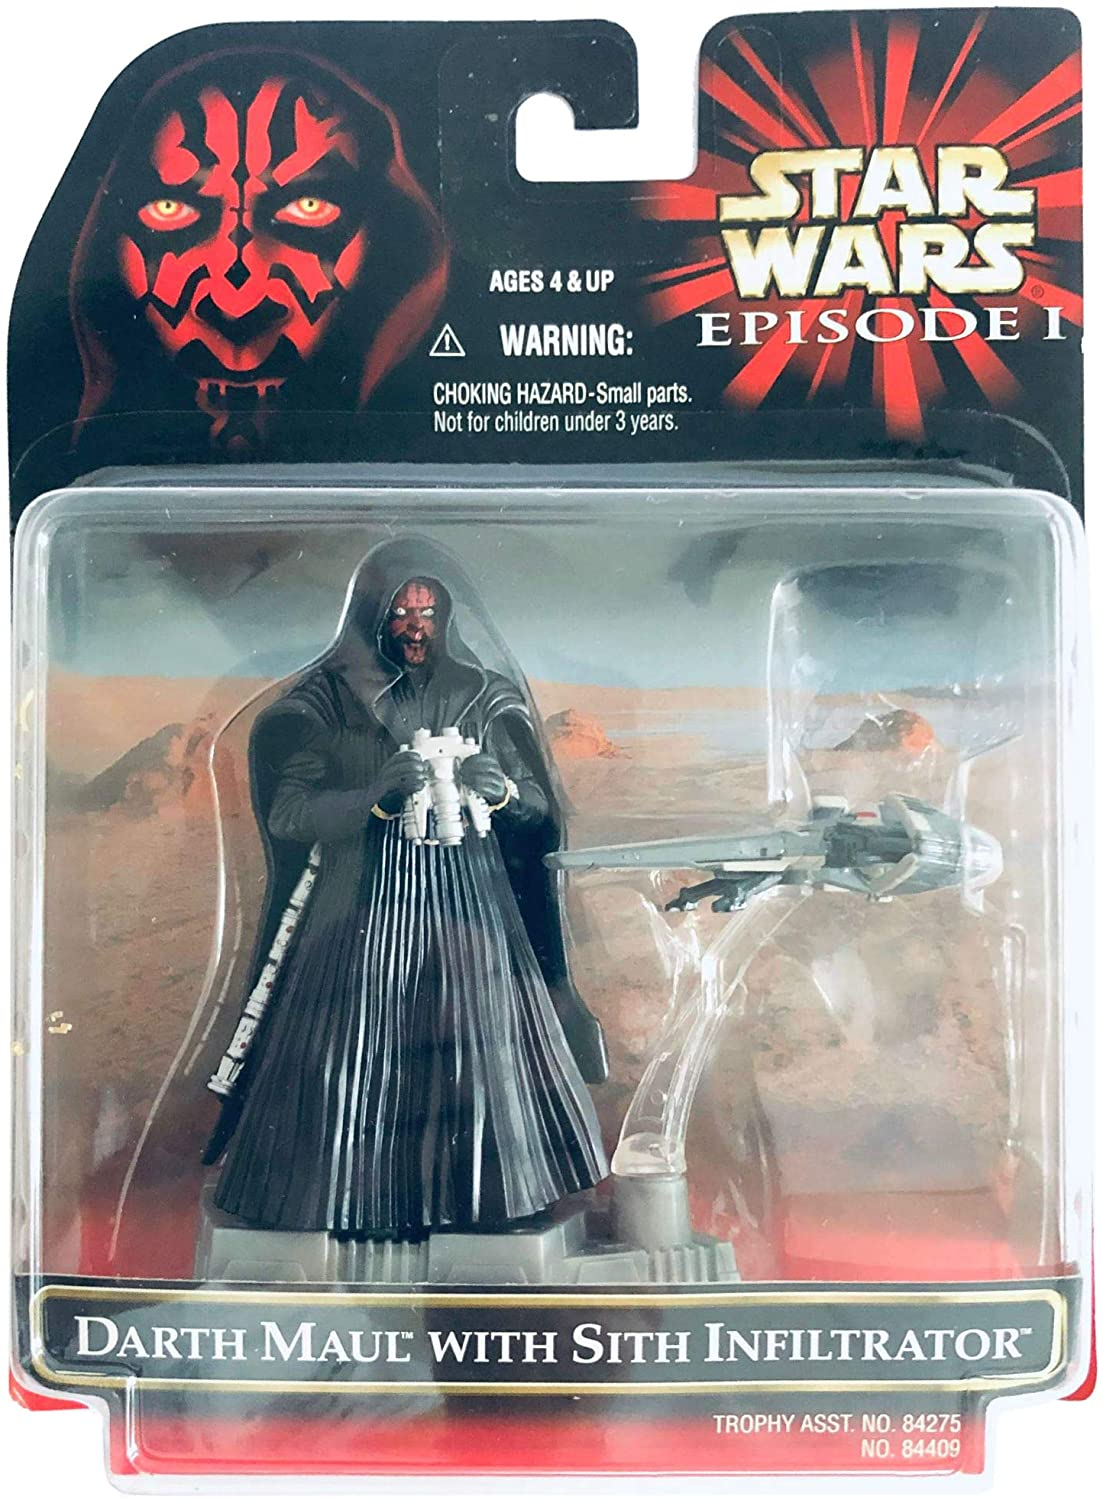 Darth Maul with Sith Infiltrator -